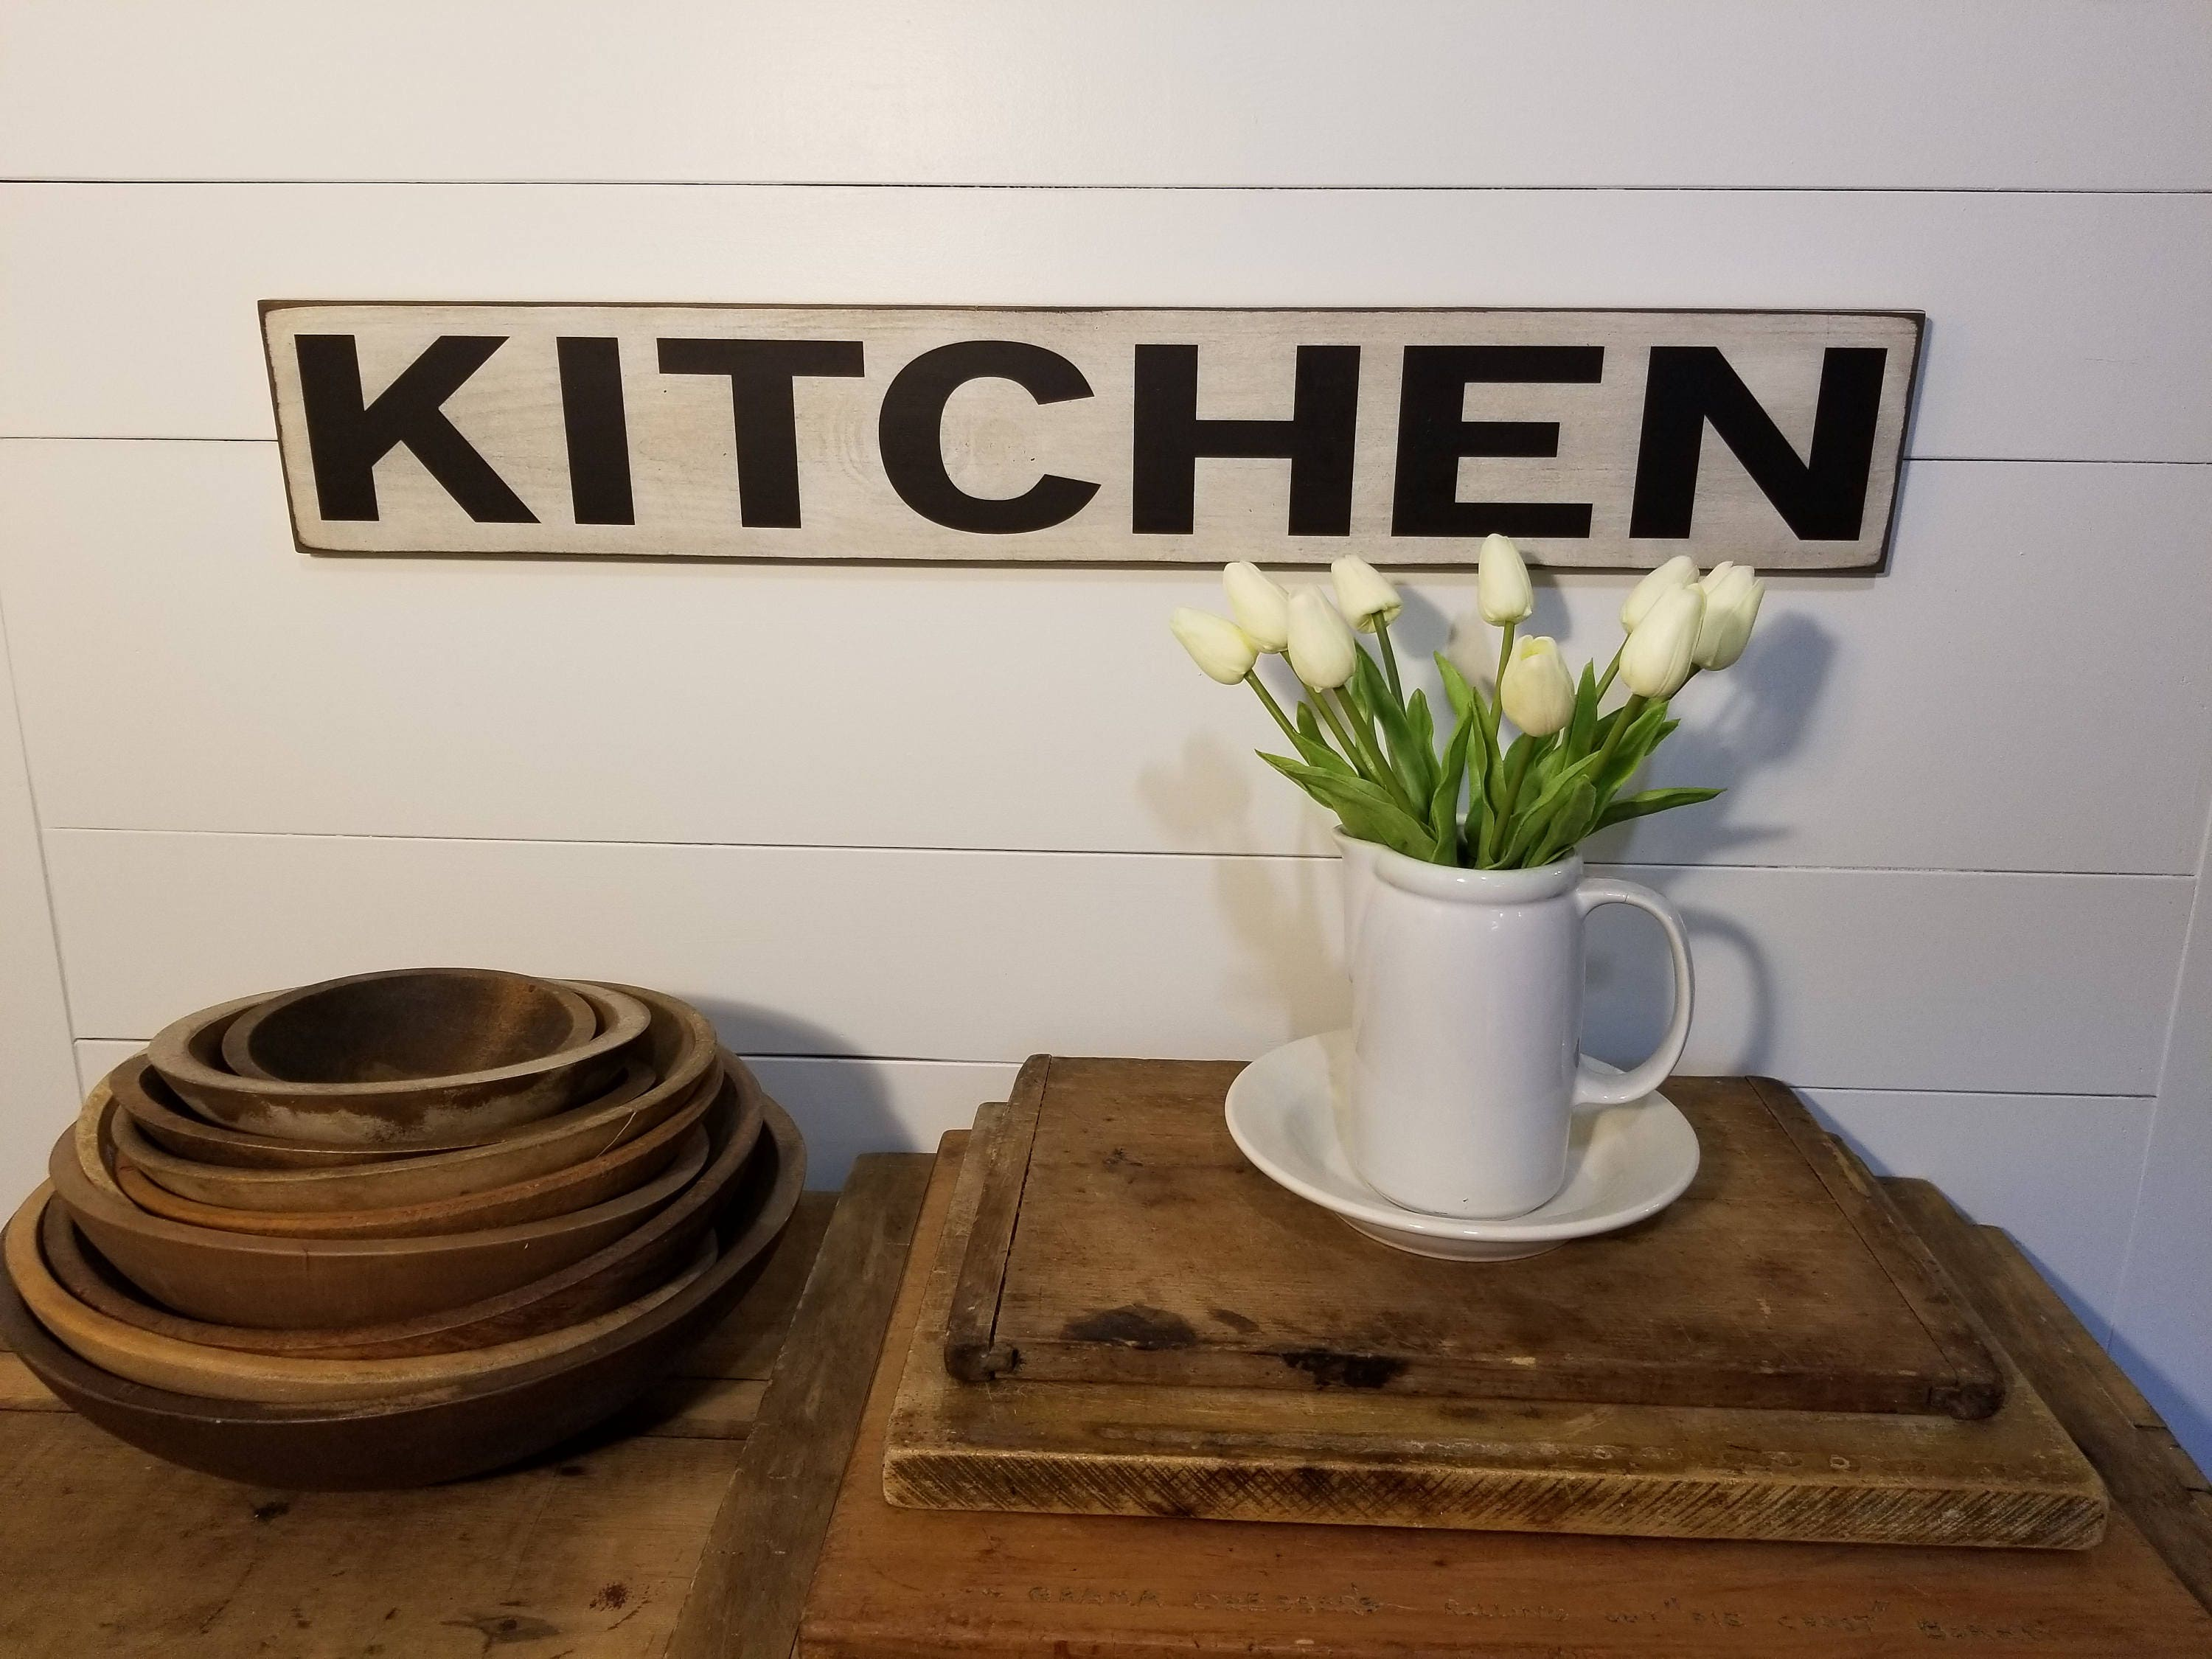 Kitchen Sign Farmhouse Decor Rustic Wooden Sign